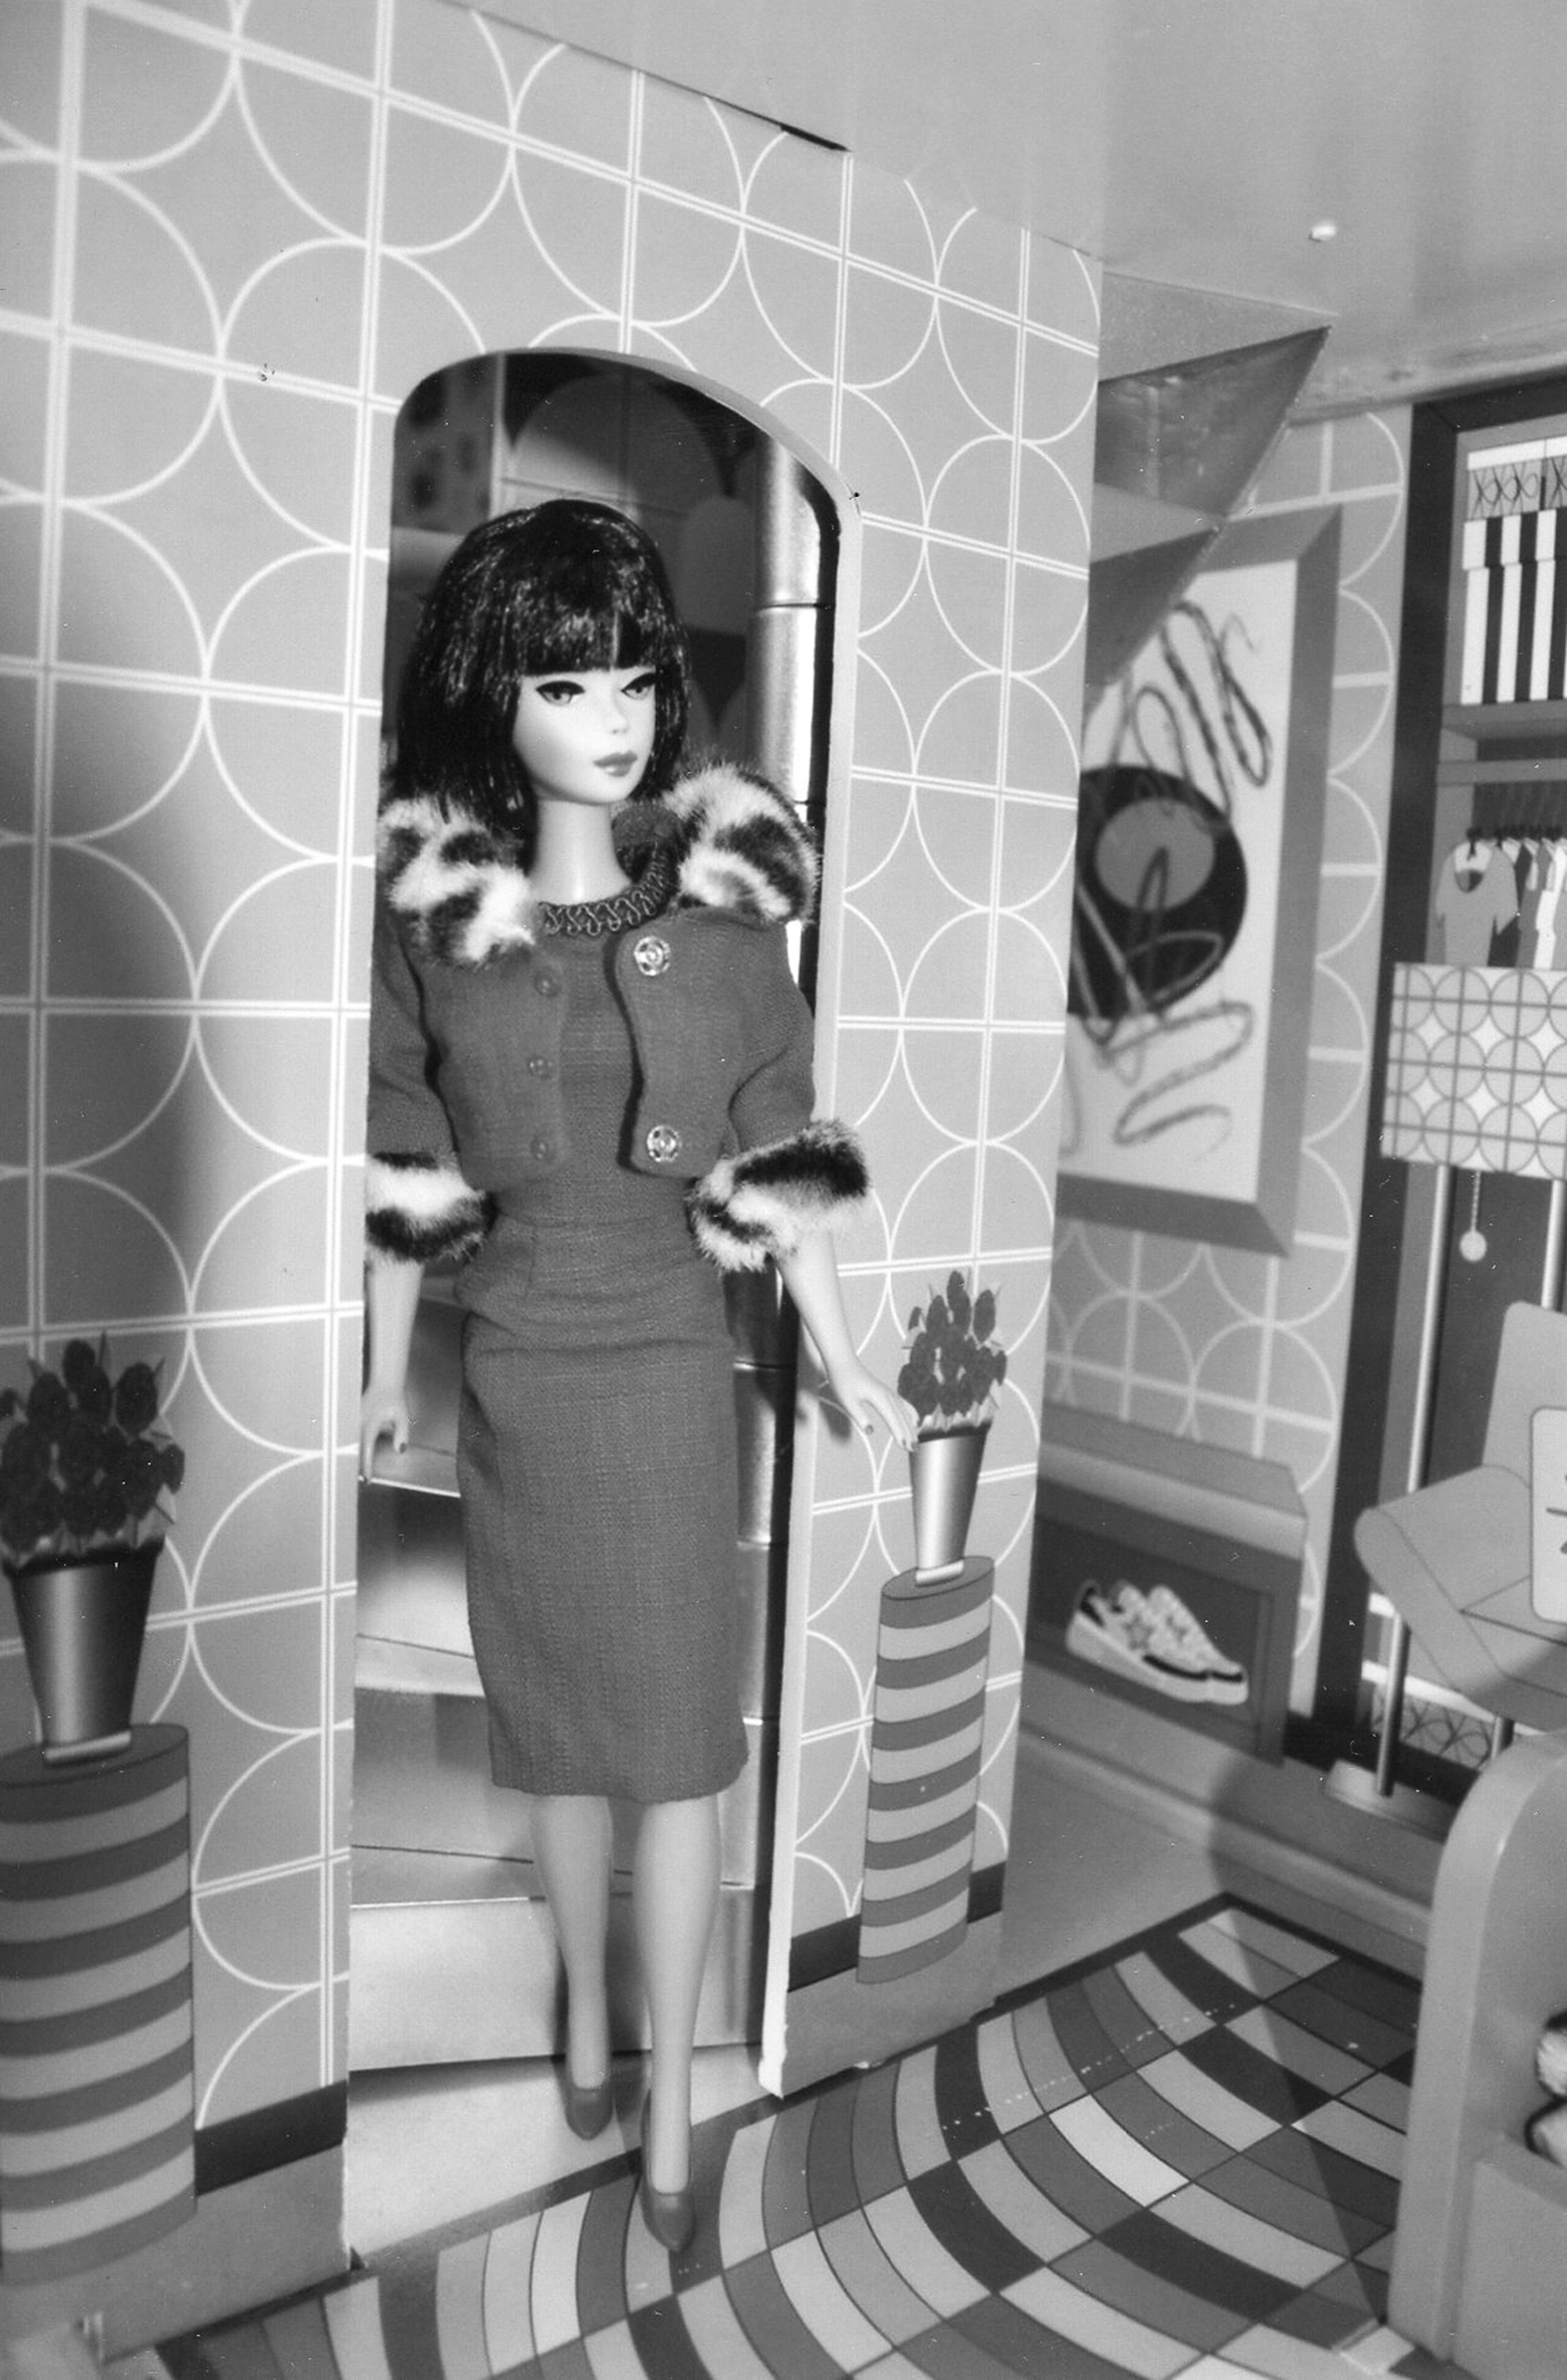 The End of the Affair #2 -Barbie 1965 by Andrea McCafferty